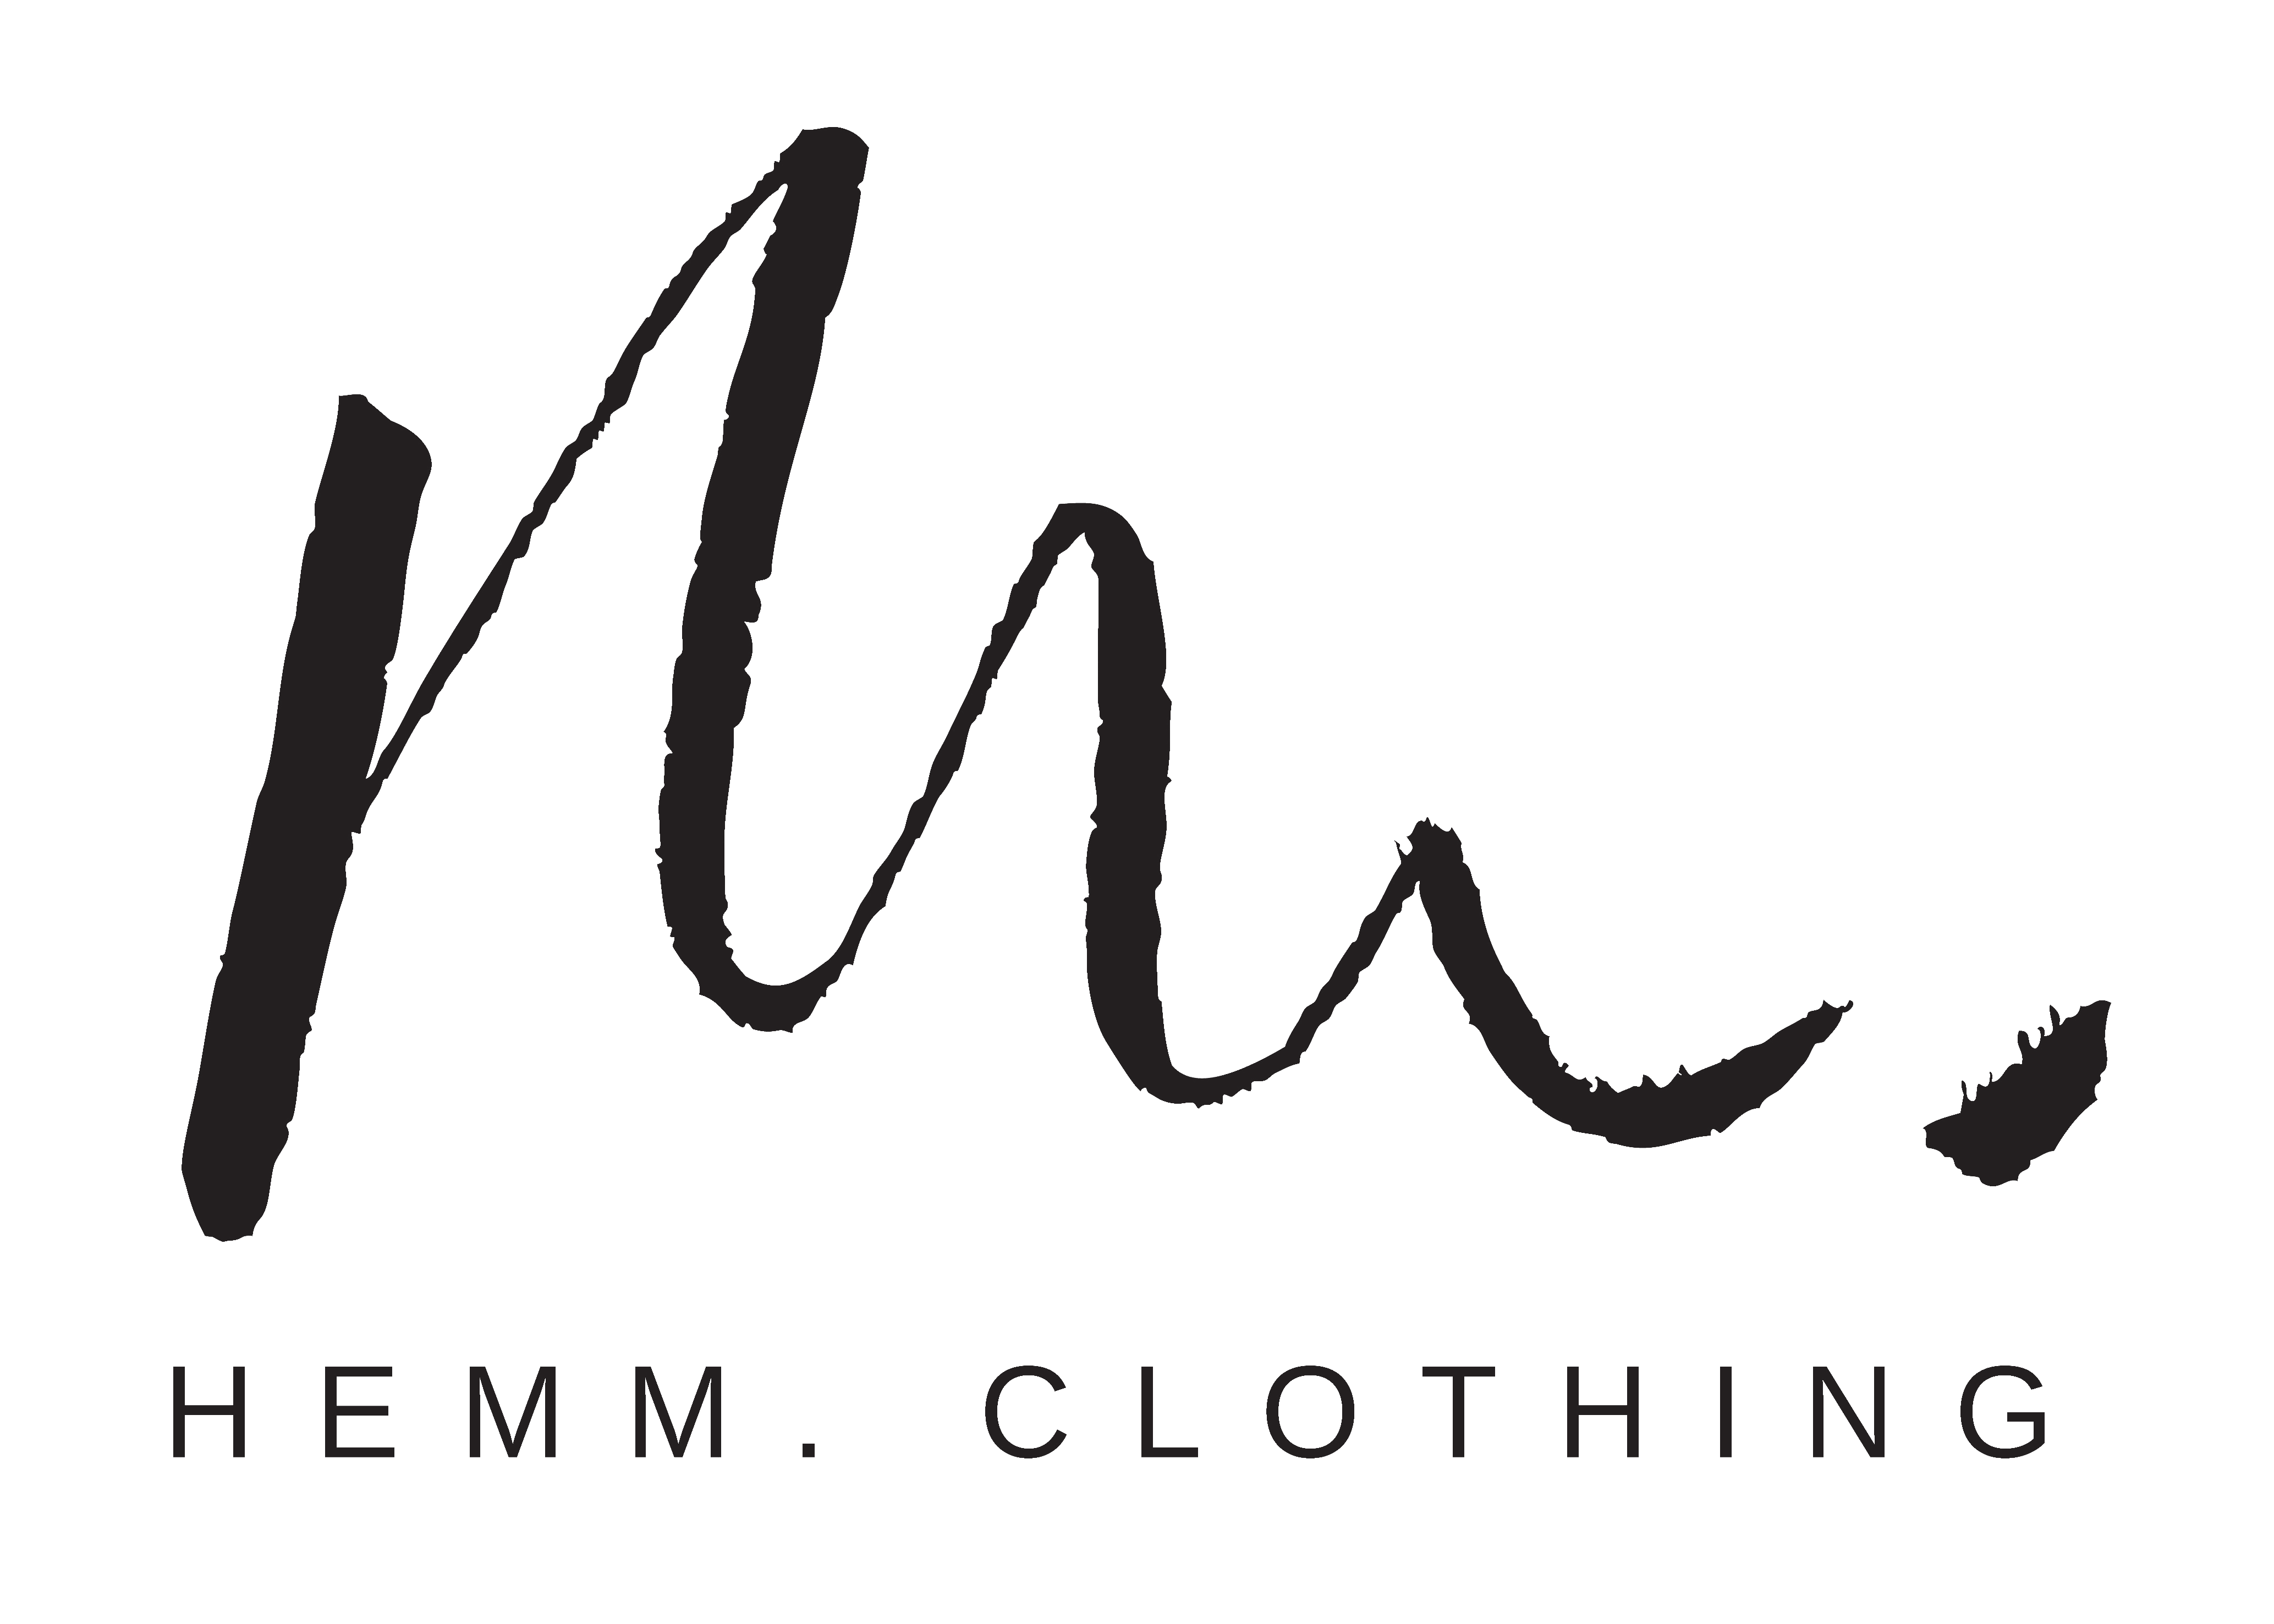 Hemm. Clothing Help Center home page